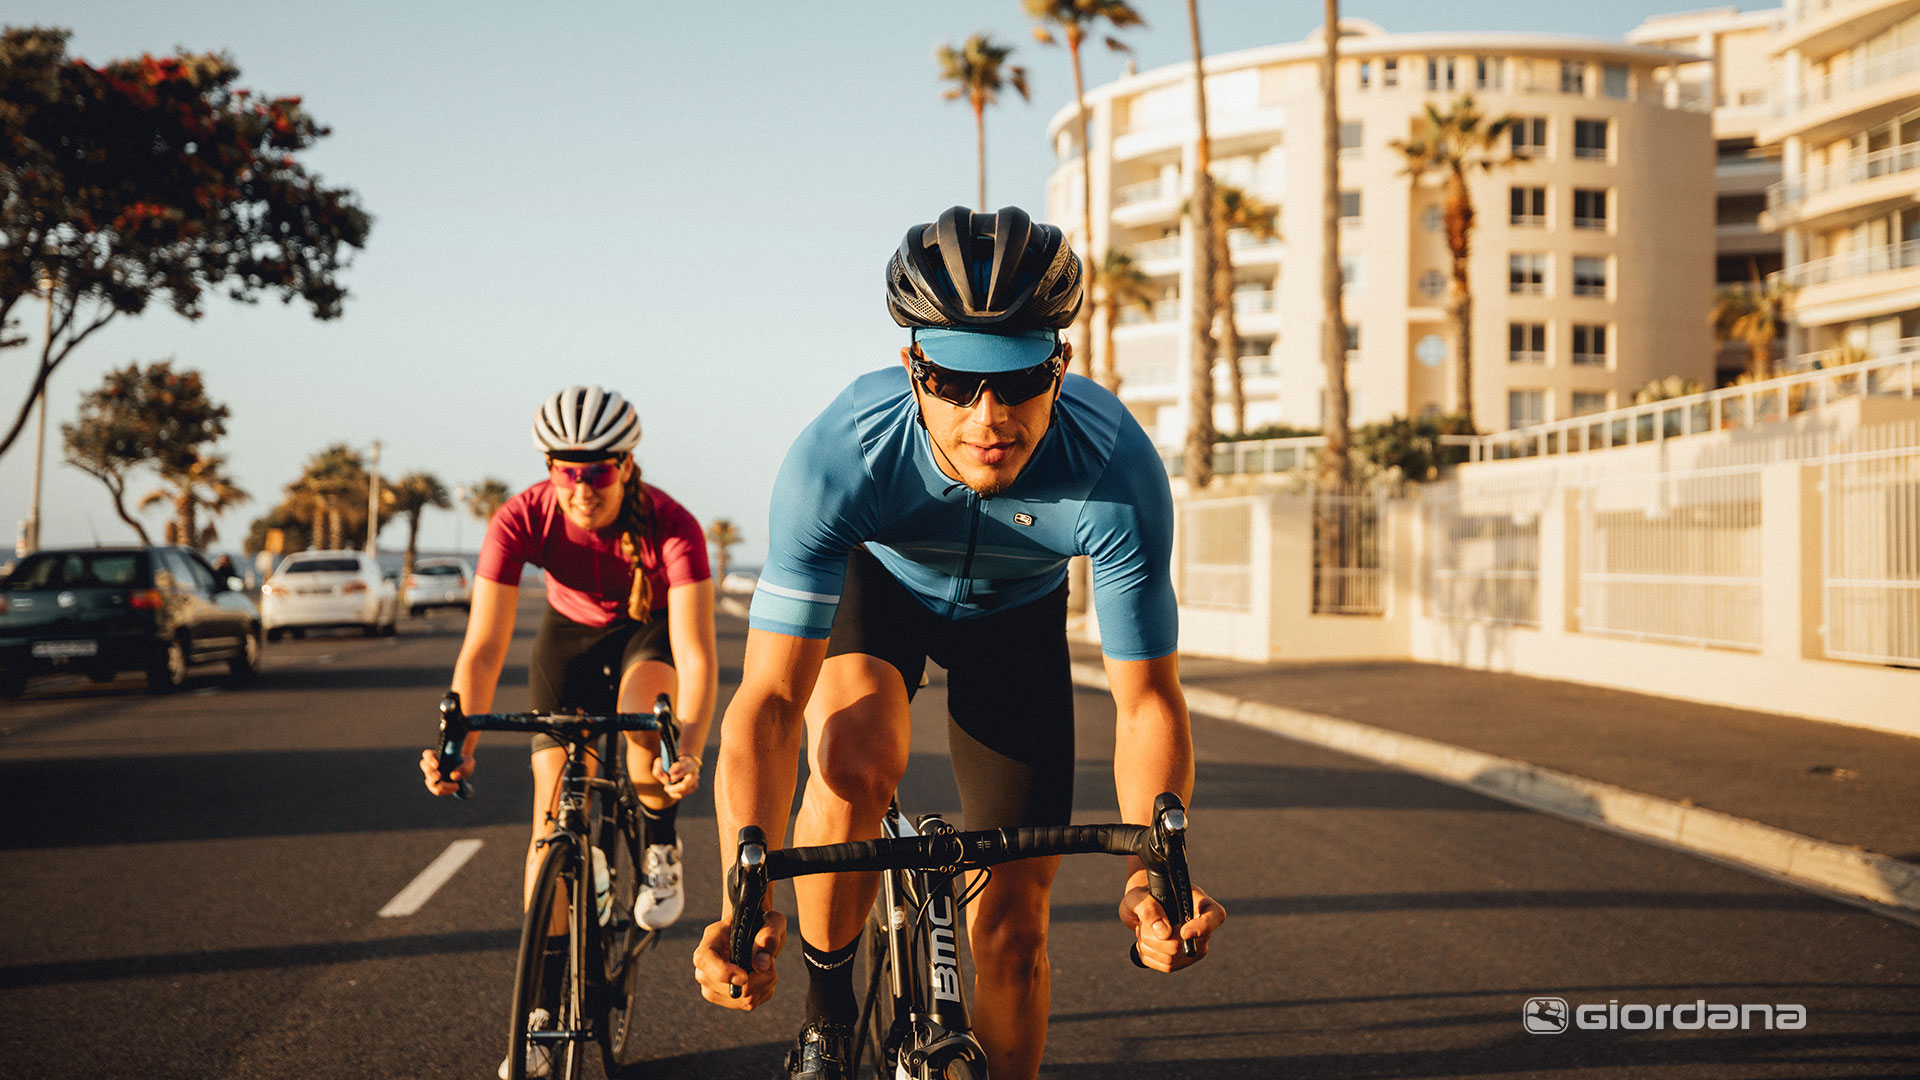 giordana-cycling-ss20-sea-point-1